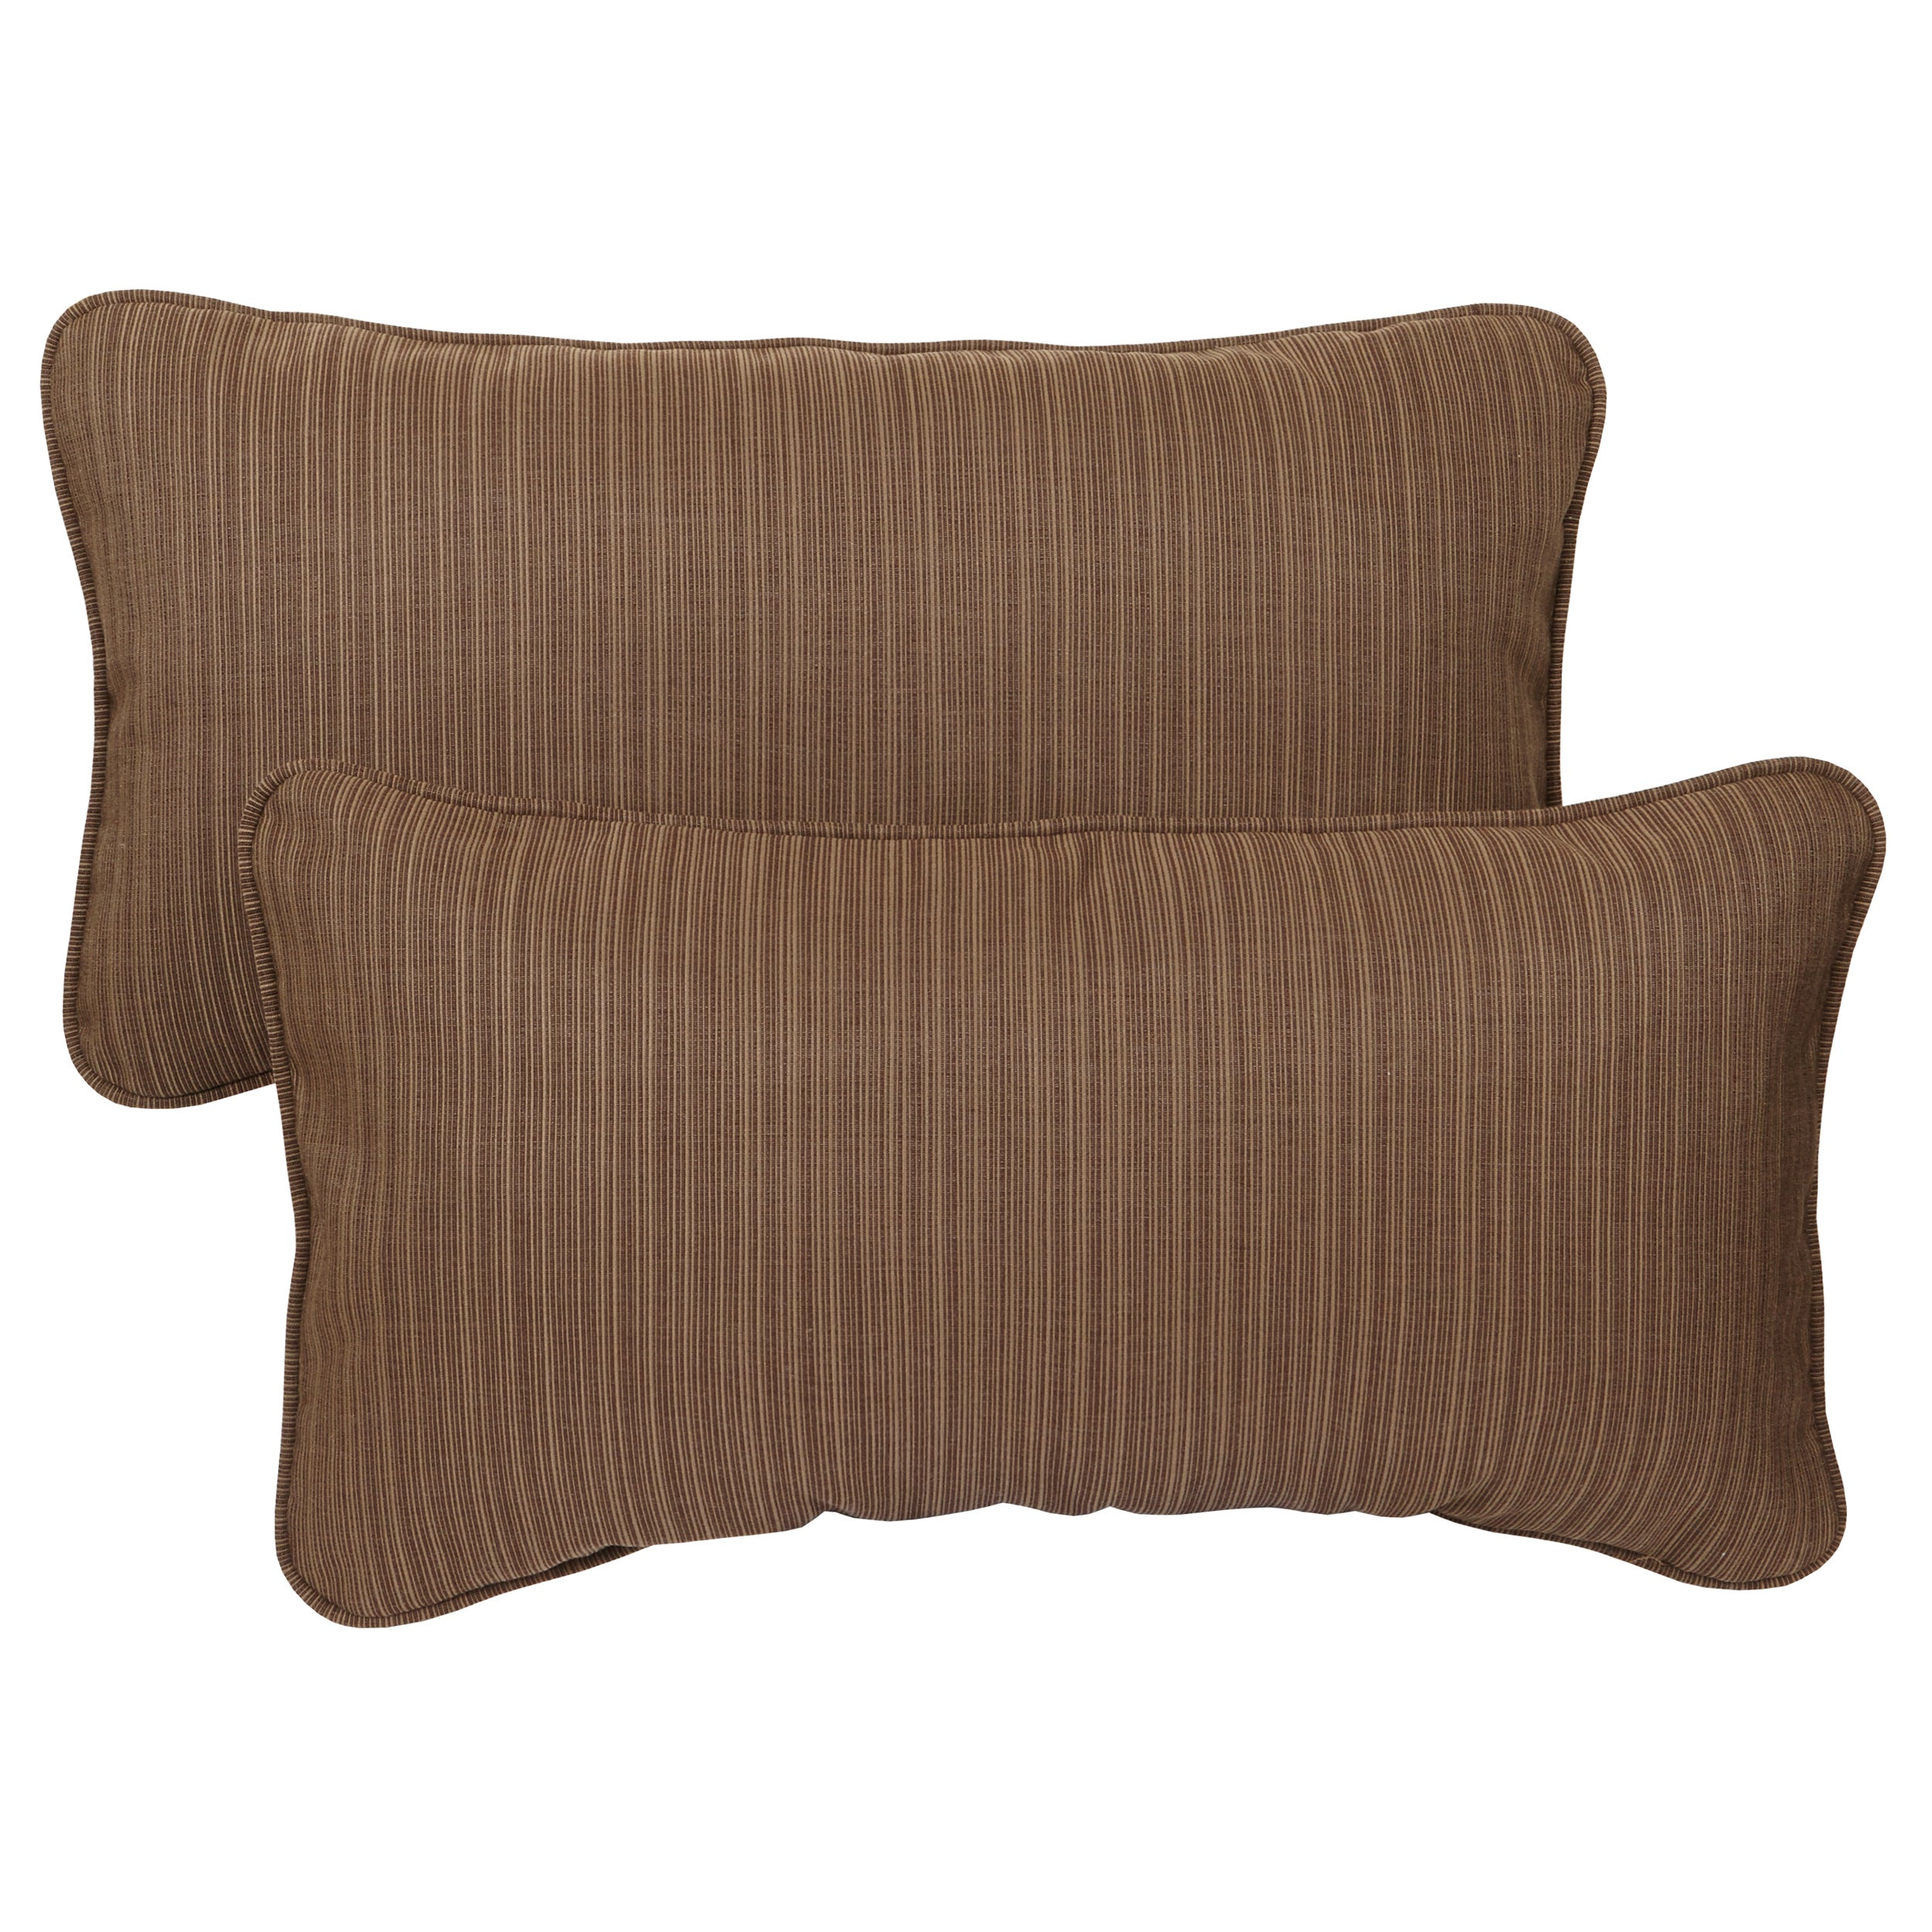 lumbar tans pillow lindon oatmeal and brown pin